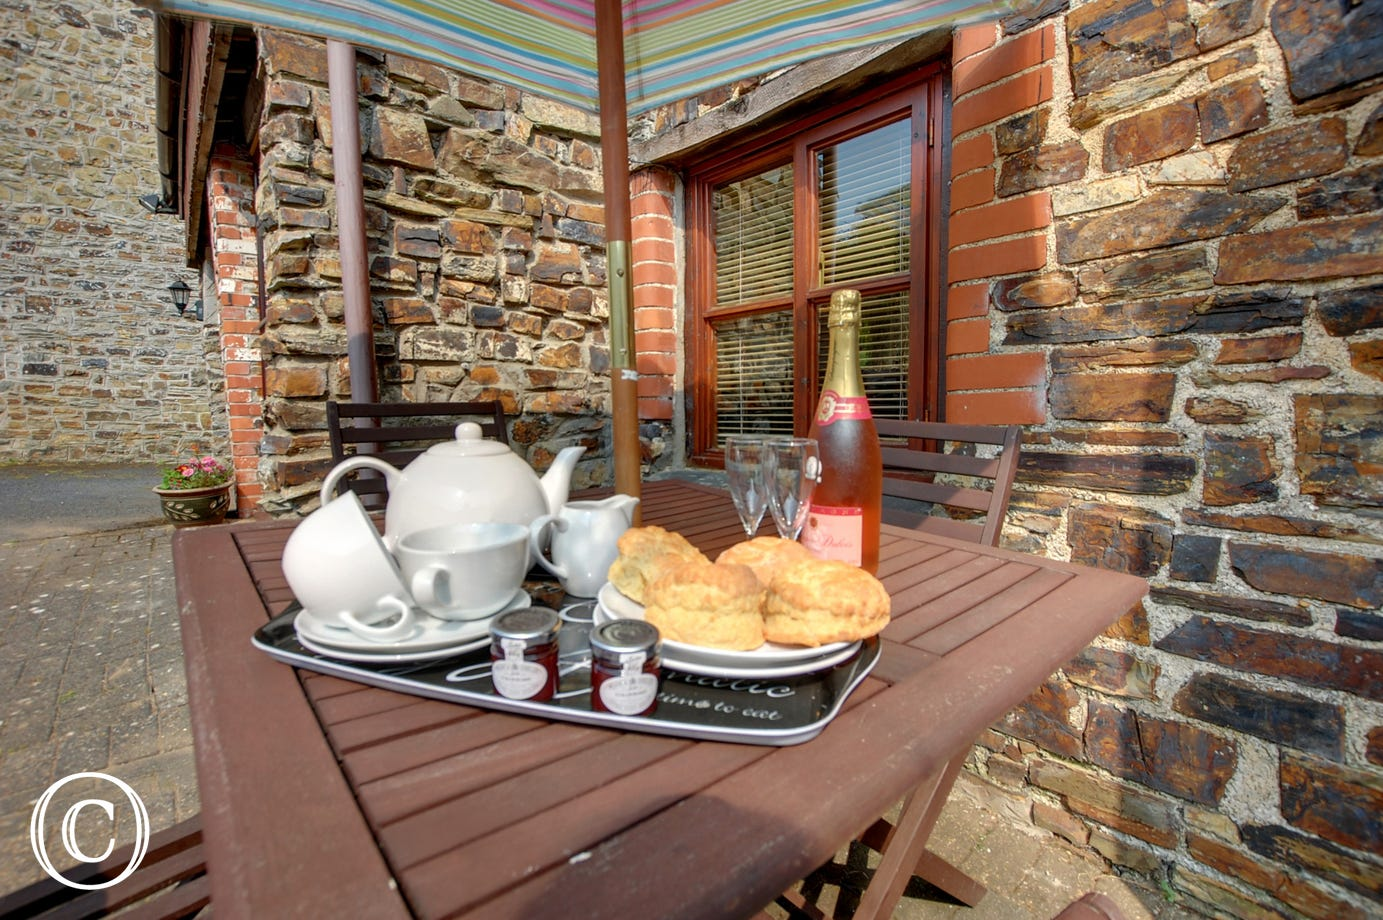 Enjoy a traditional Devon cream tea for two on the patio area!